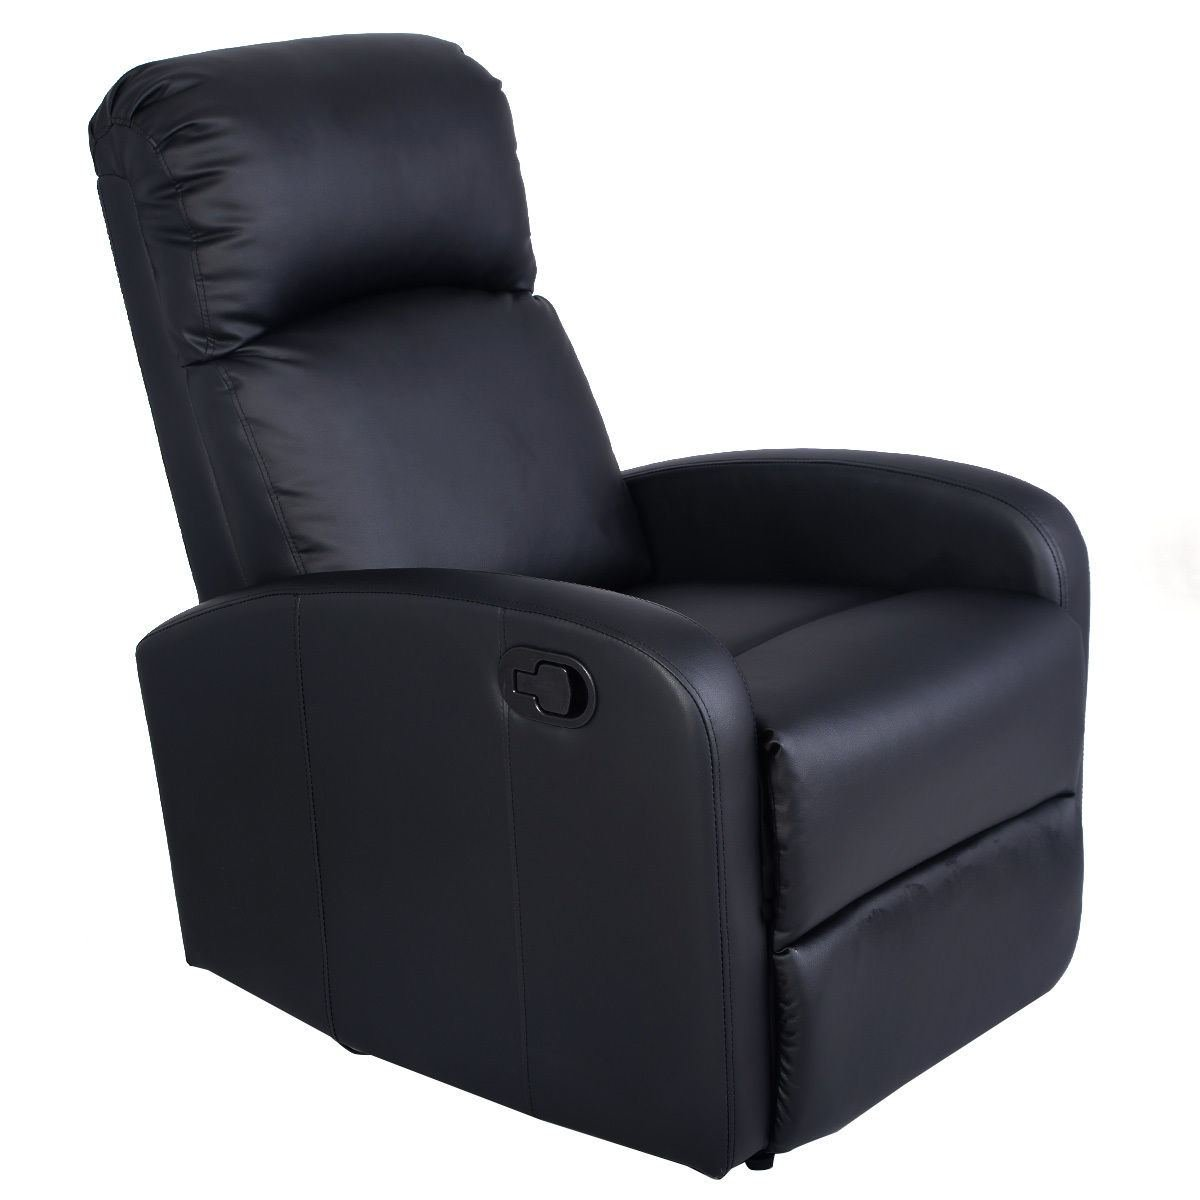 MasterPanel - Manual Recliner Chair Black Lounger Leather Sofa Seat Home Theater #TP3241